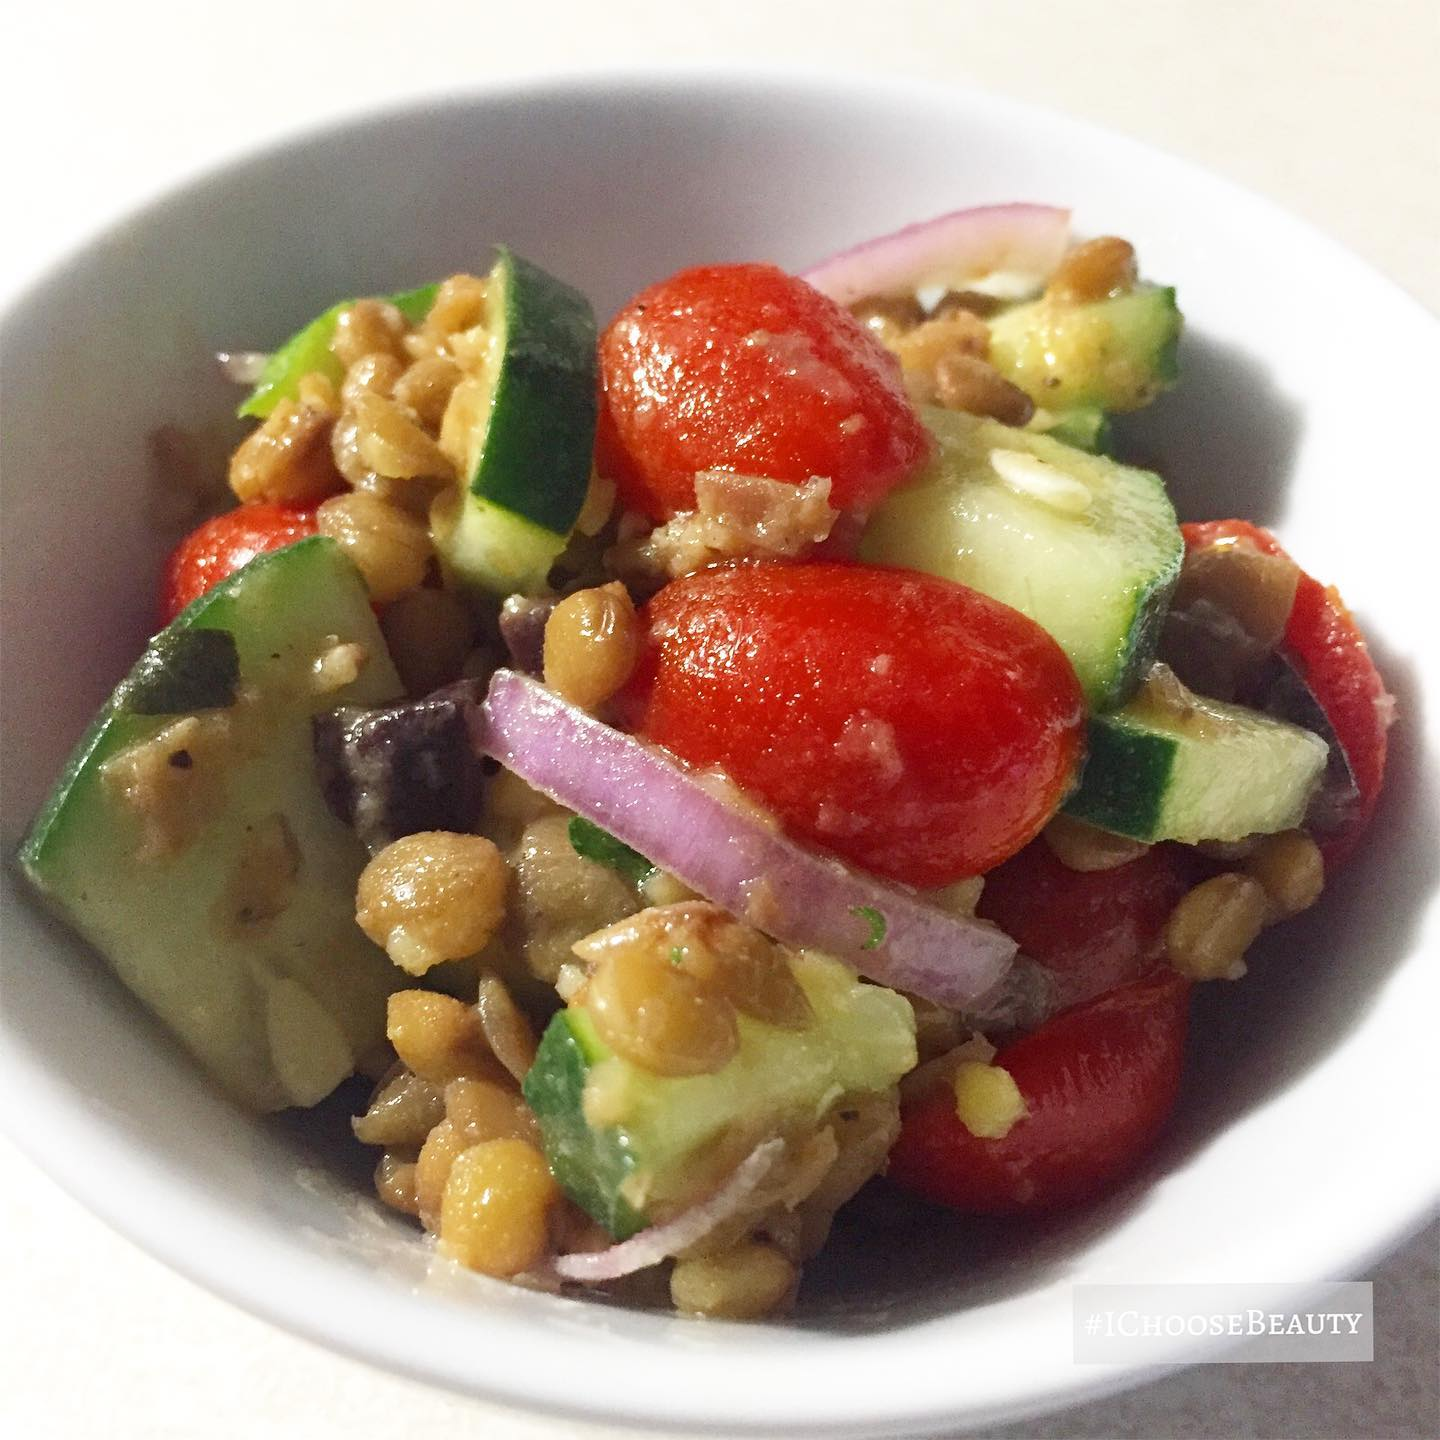 This totally hit the spot- lentil salad with cucumbers and tomatoes.  #ichoosebeauty Day 2704